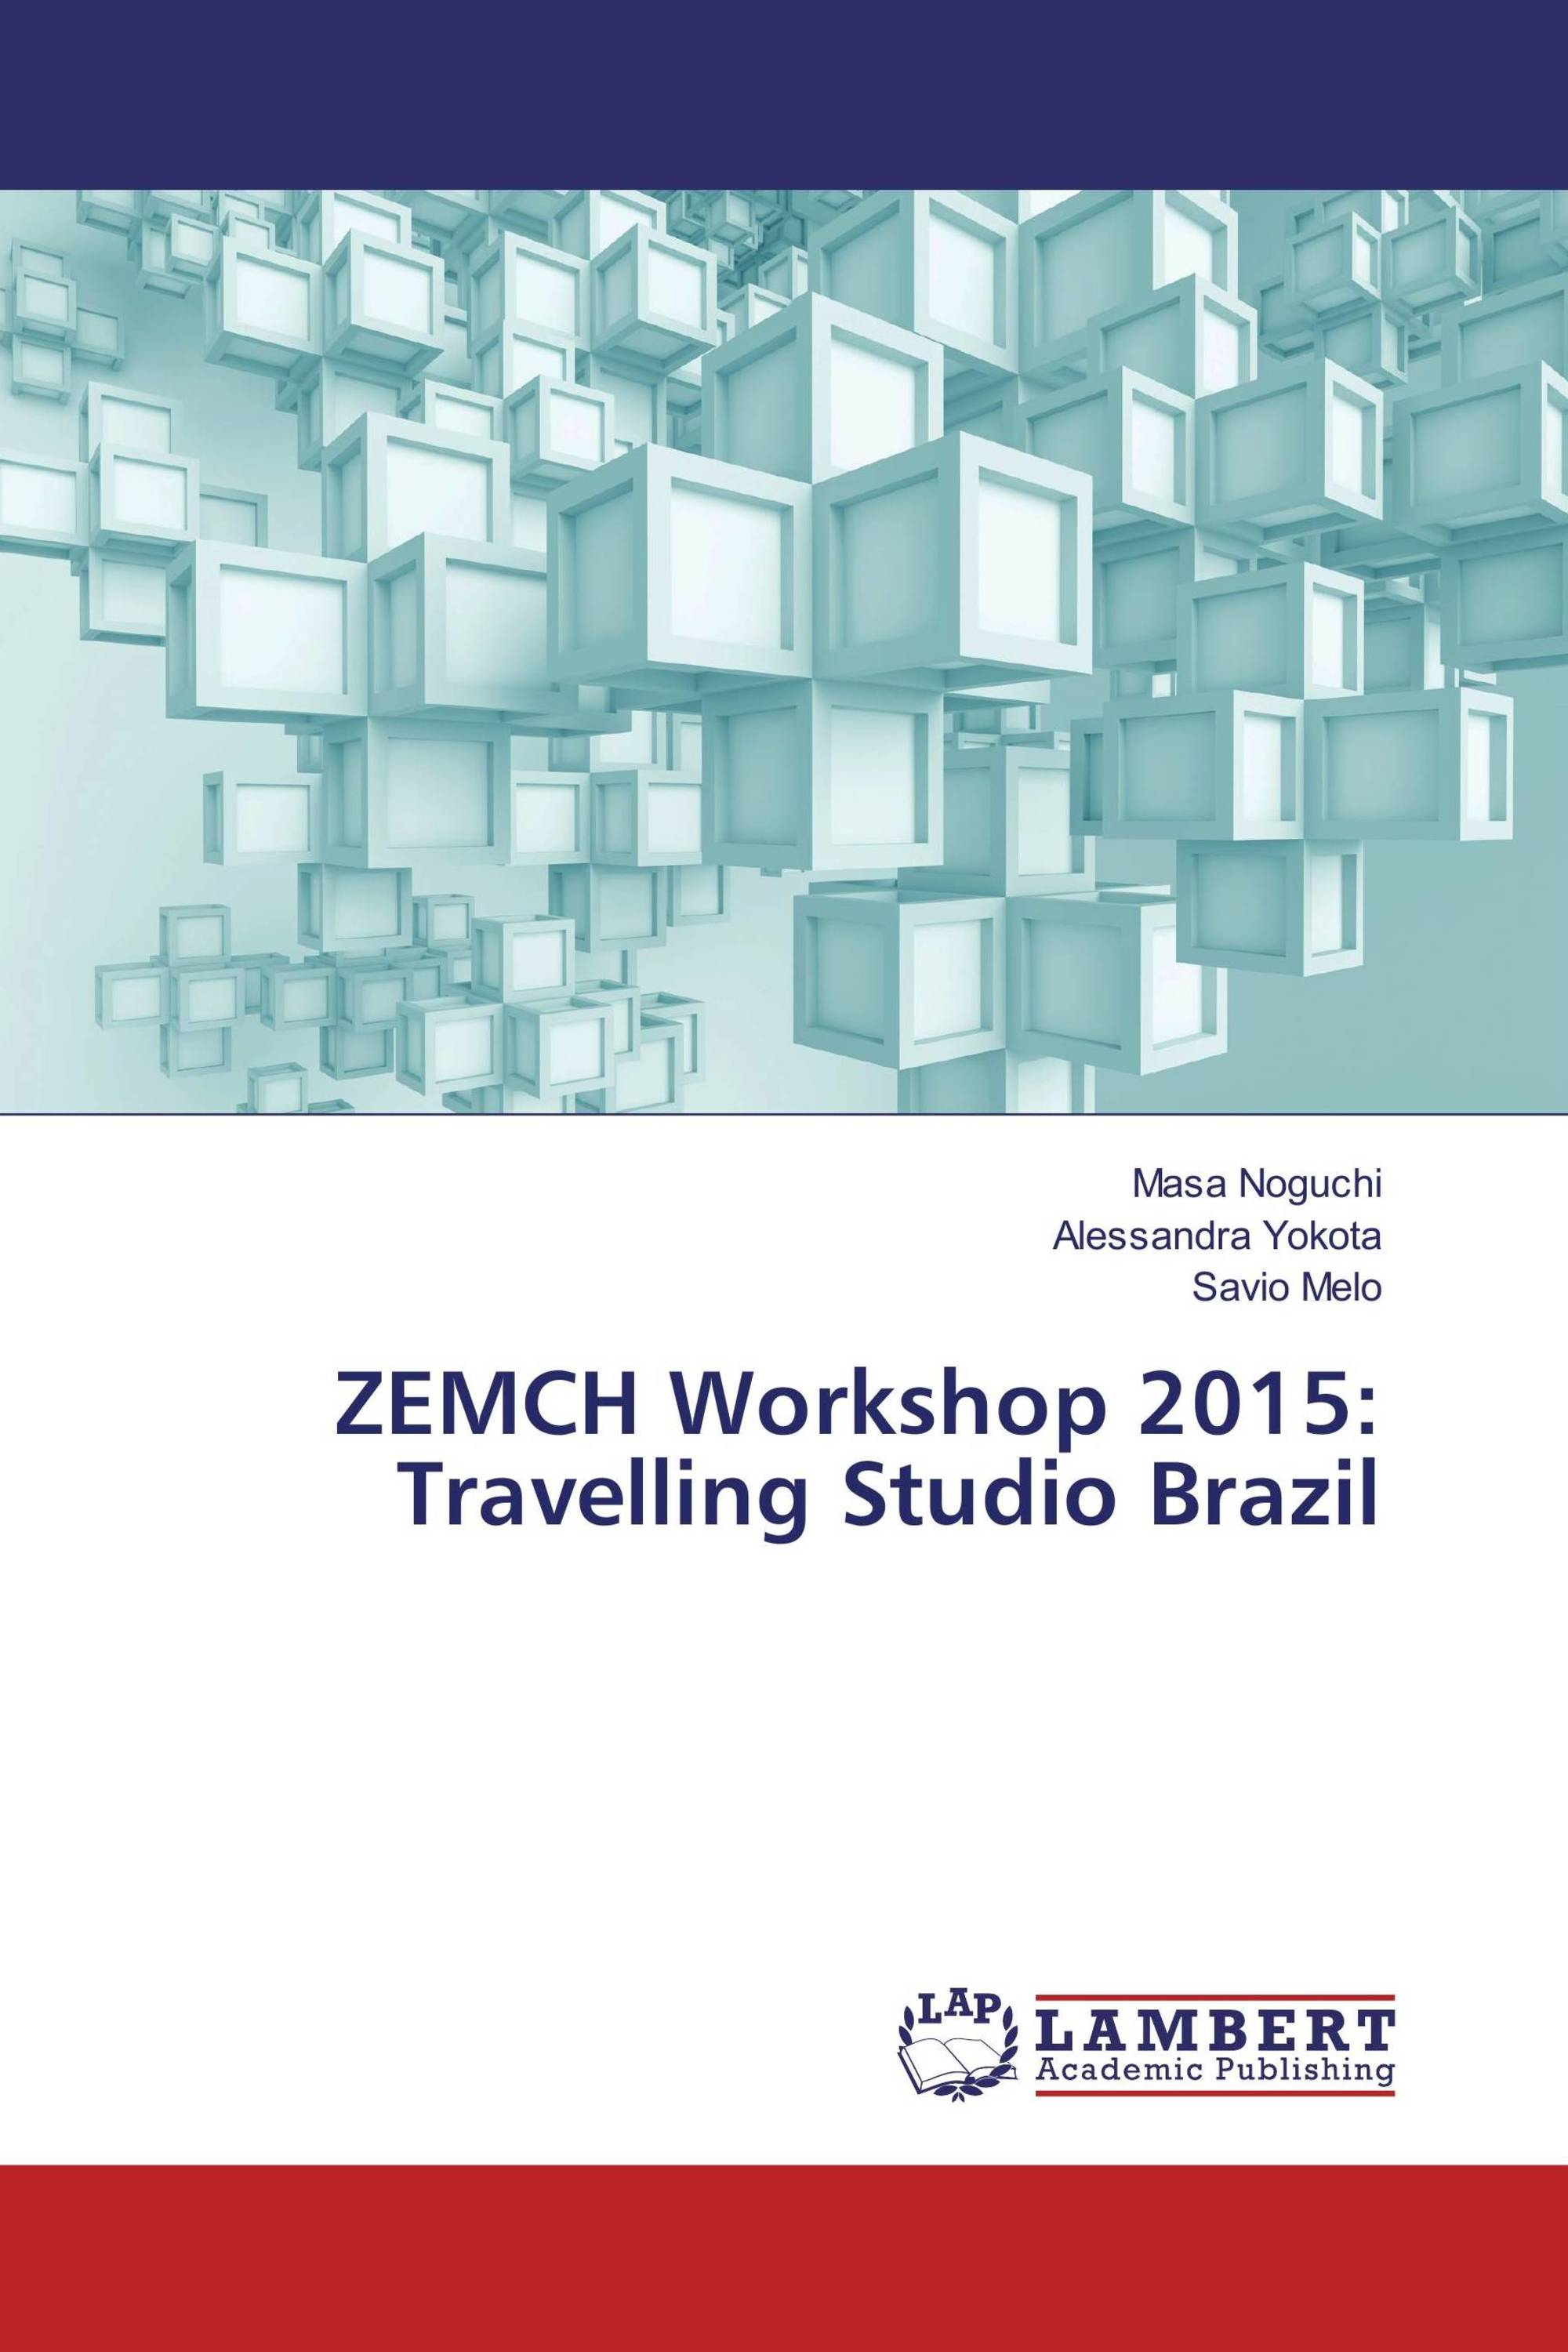 ZEMCH Workshop 2015: Travelling Studio Brazil